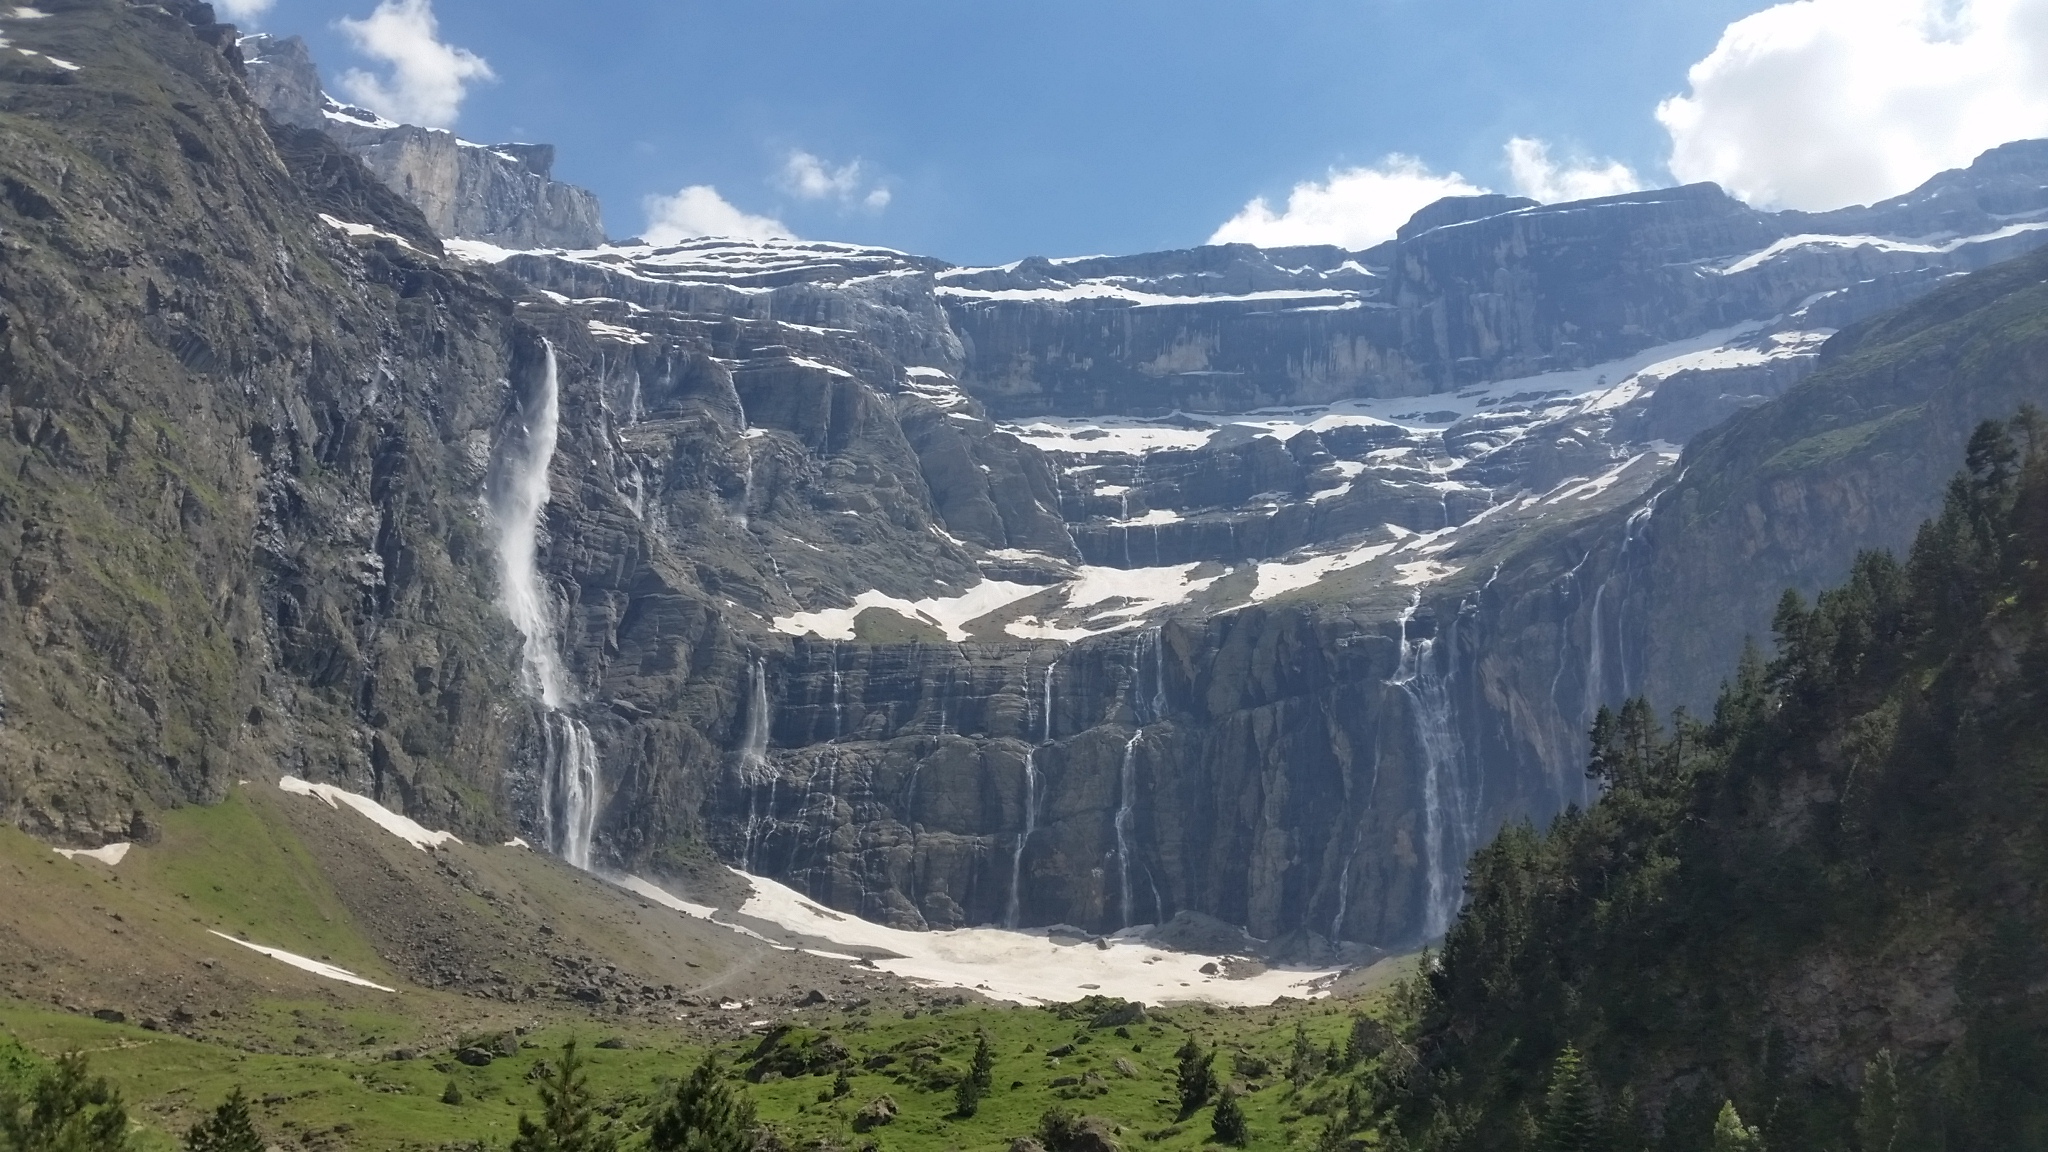 Cirque of Gavarnie